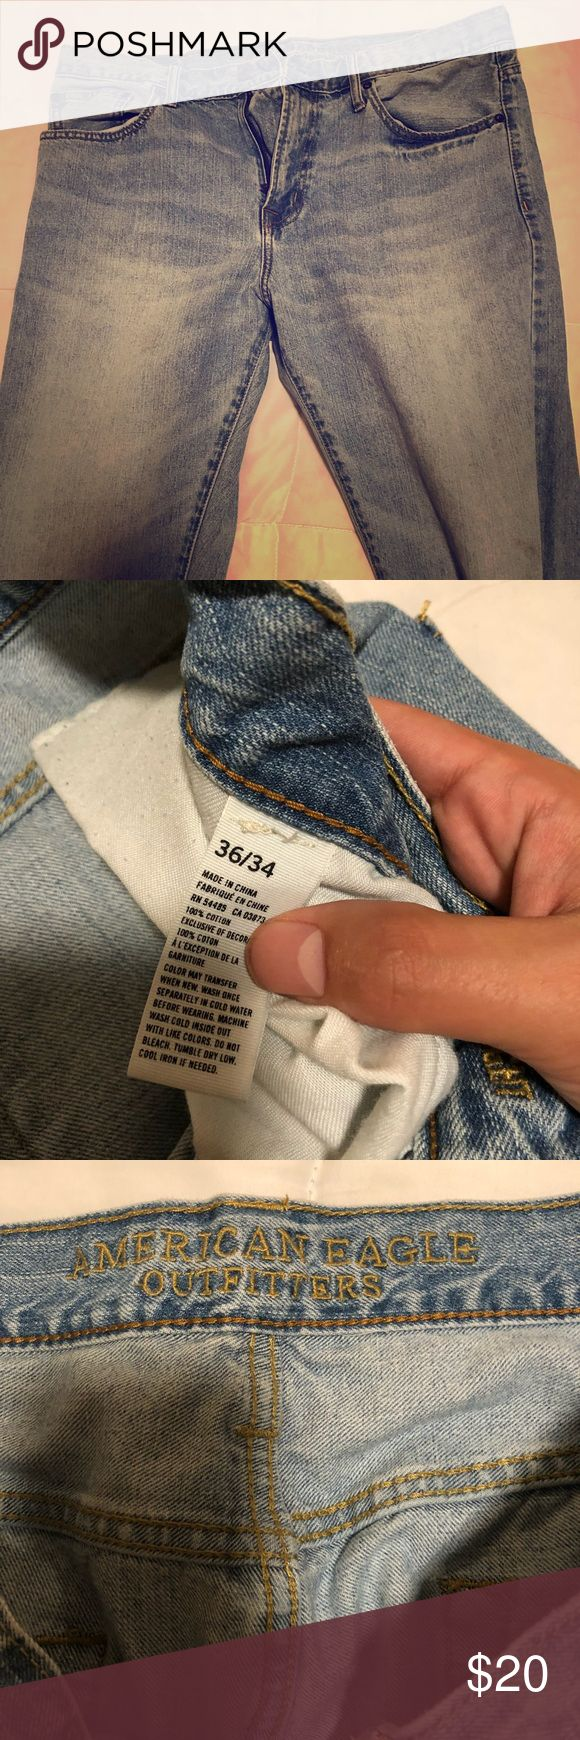 White Washed American Eagle Men's Jeans - 36x34 Stylish men's American Eagle Men's white washed jeans in excellent condition!   Update your style today! American Eagle Outfitters Jeans Straight